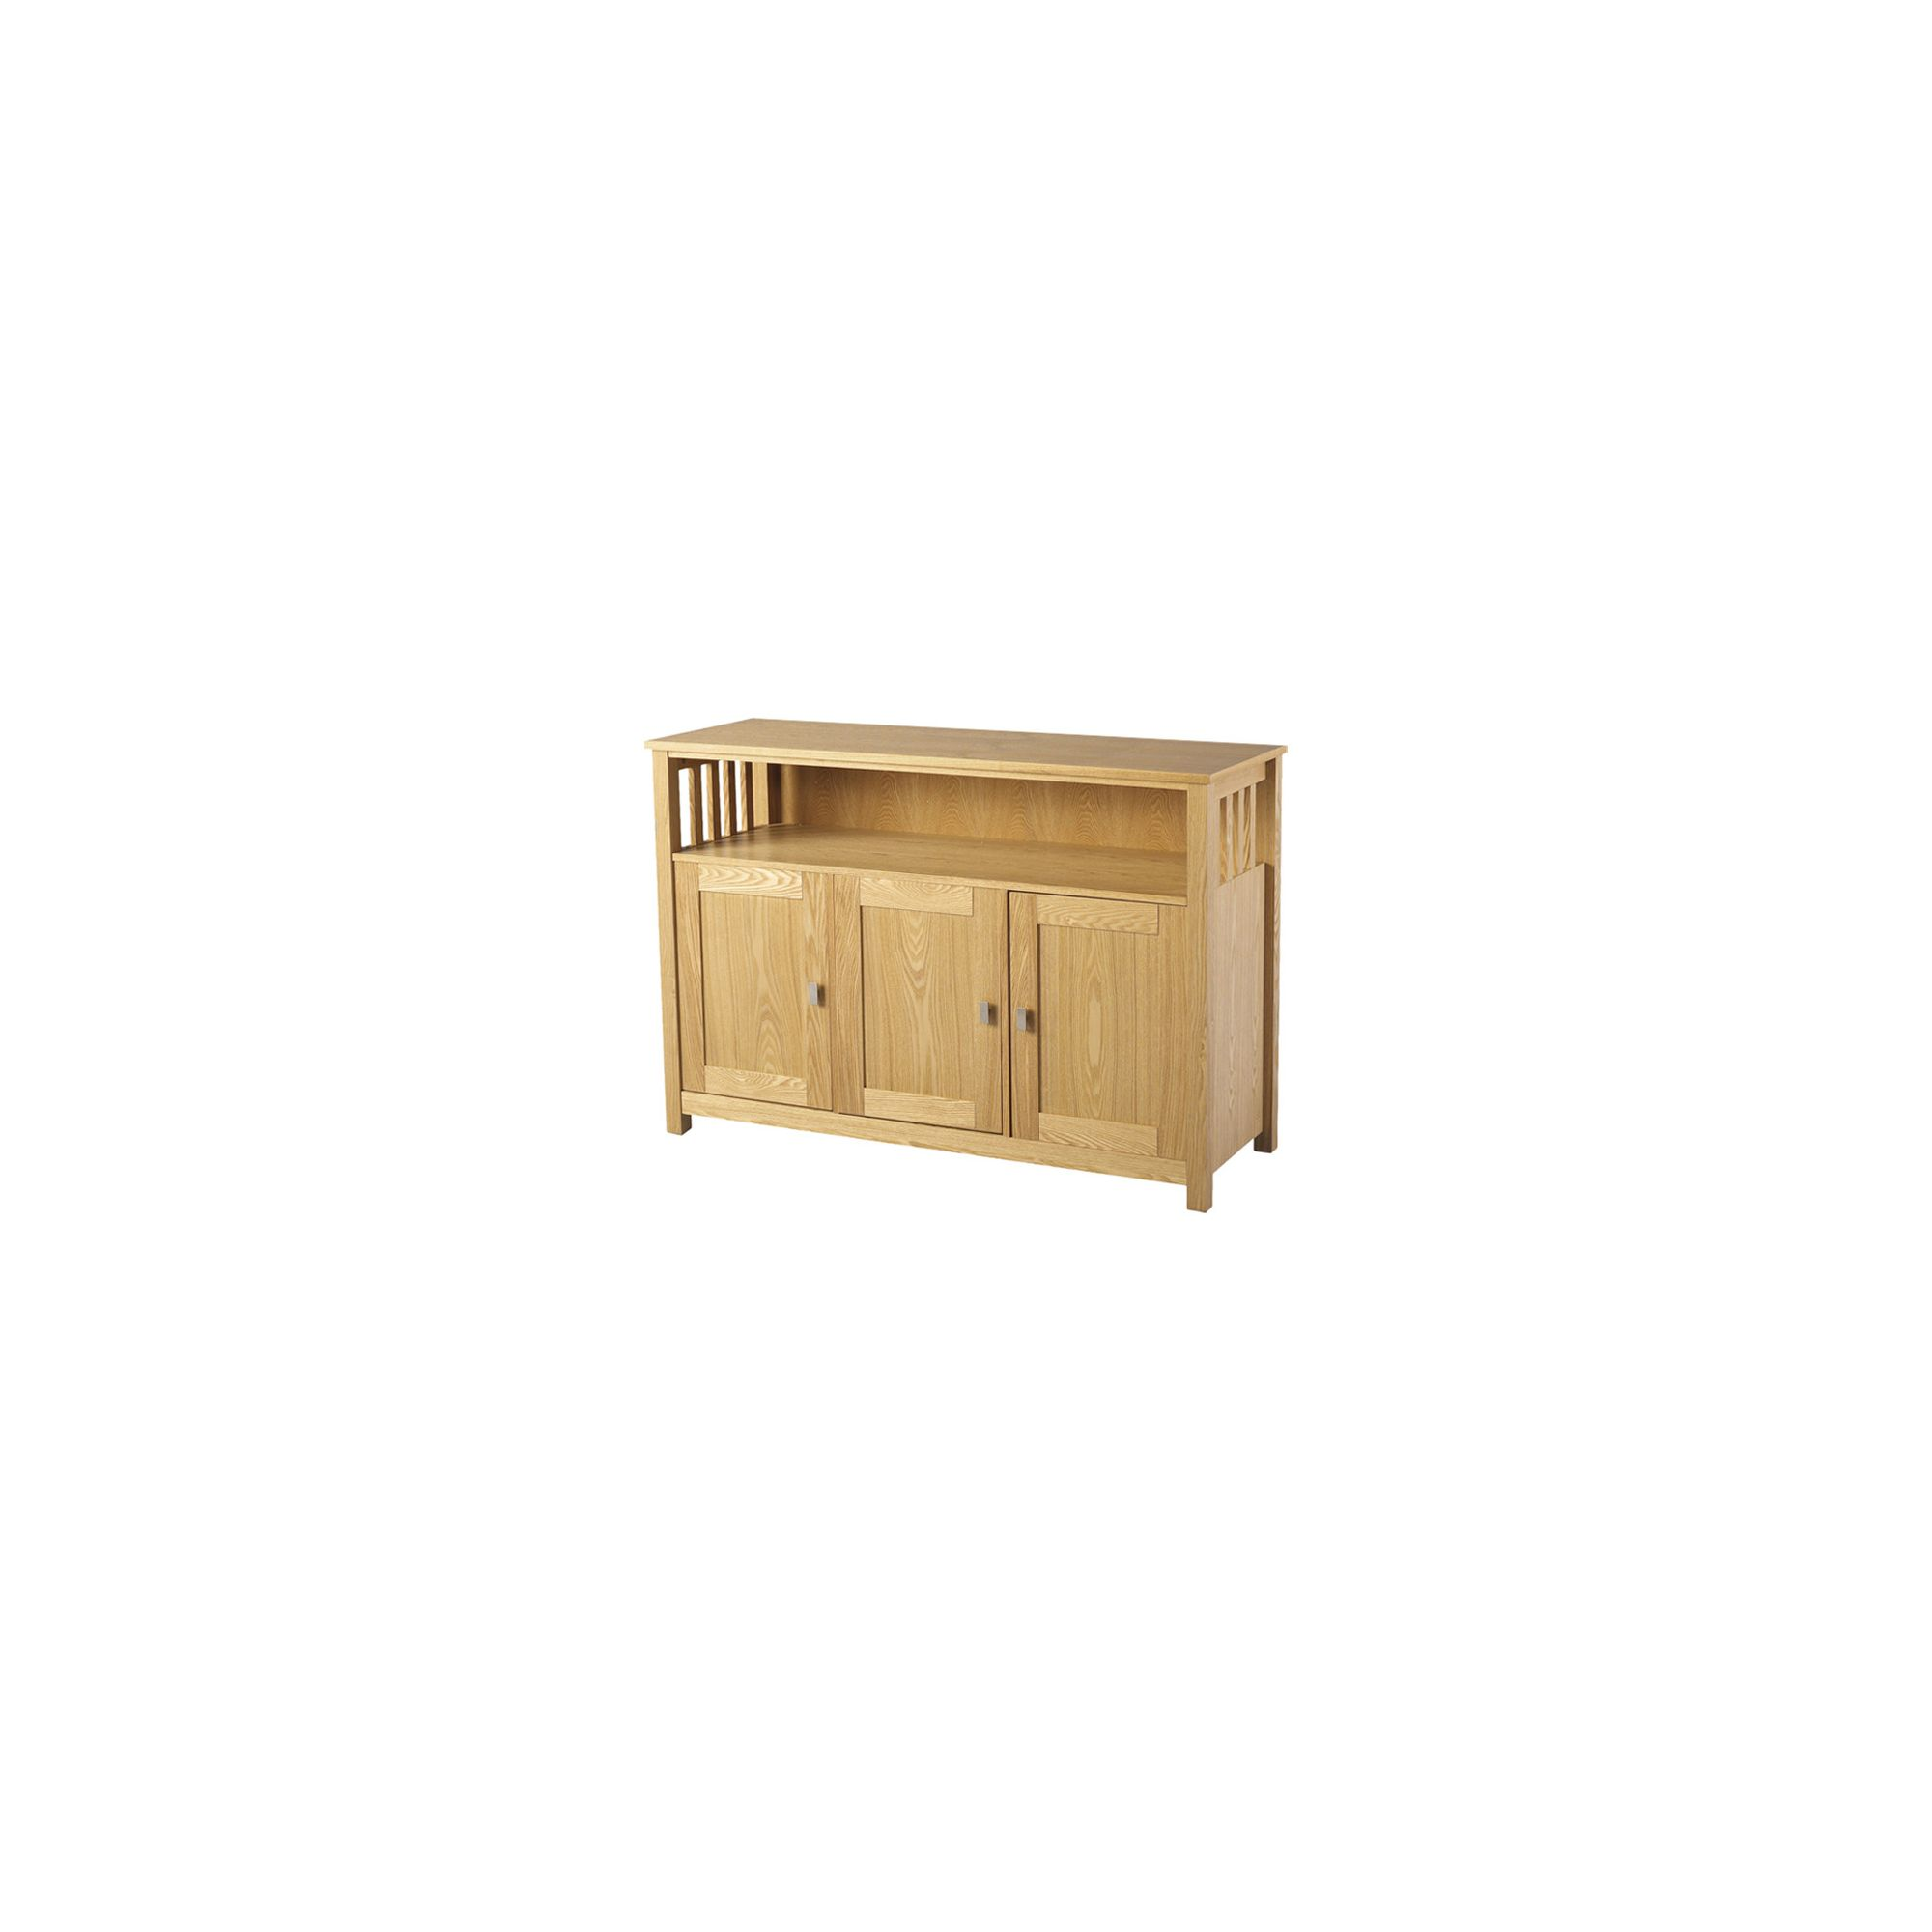 Home Essence Whitby Sideboard in Ash Veneer at Tesco Direct